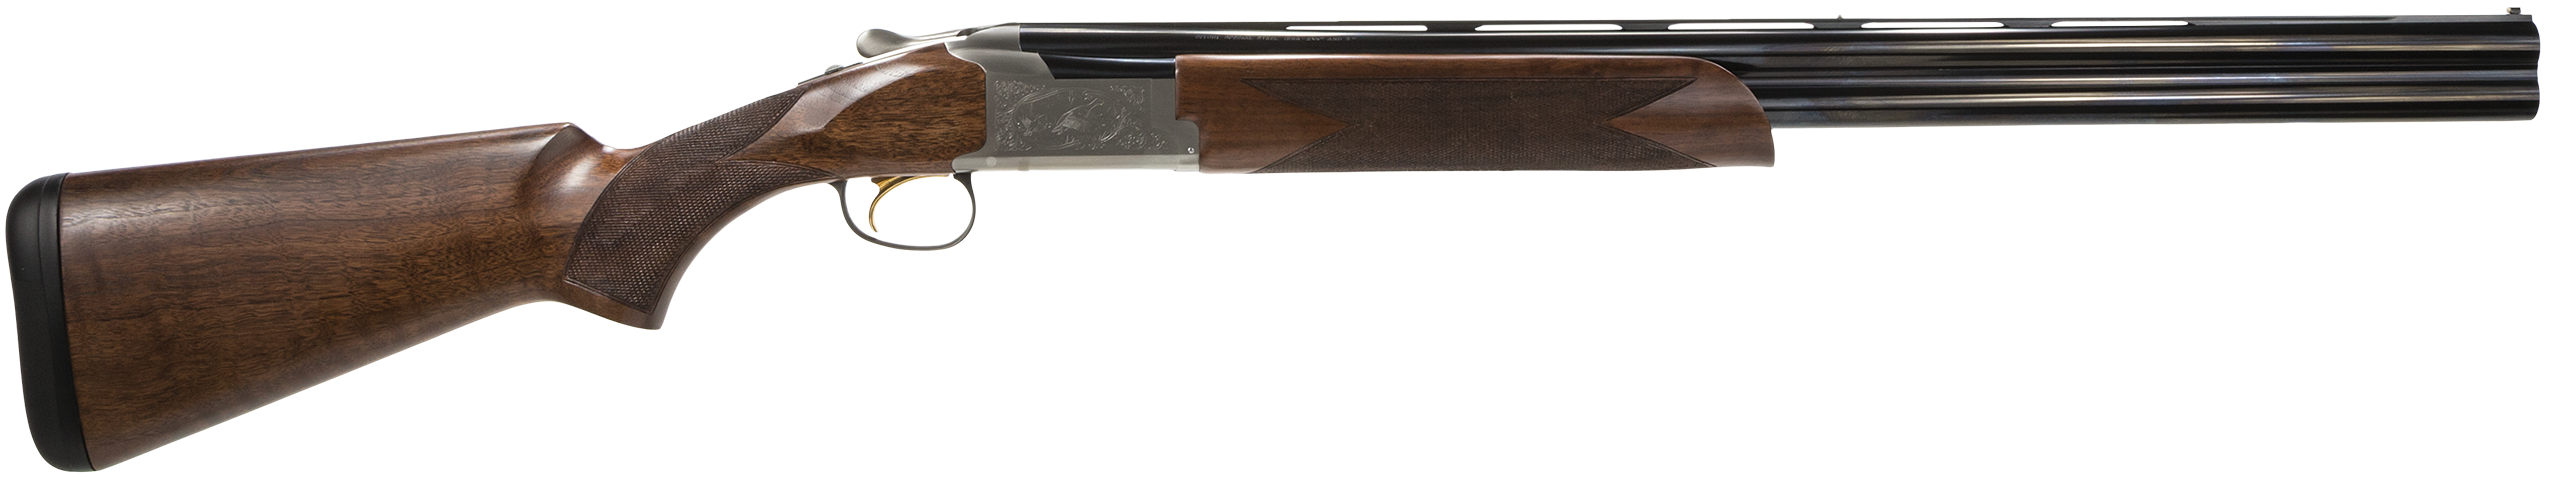 Browning Citori 725 Field Over/Under Shotgun 3'' 12 Gauge 26'' Silver Nitride Steel/Blued Barrel - Grade II Gloss/Grade III Walnut